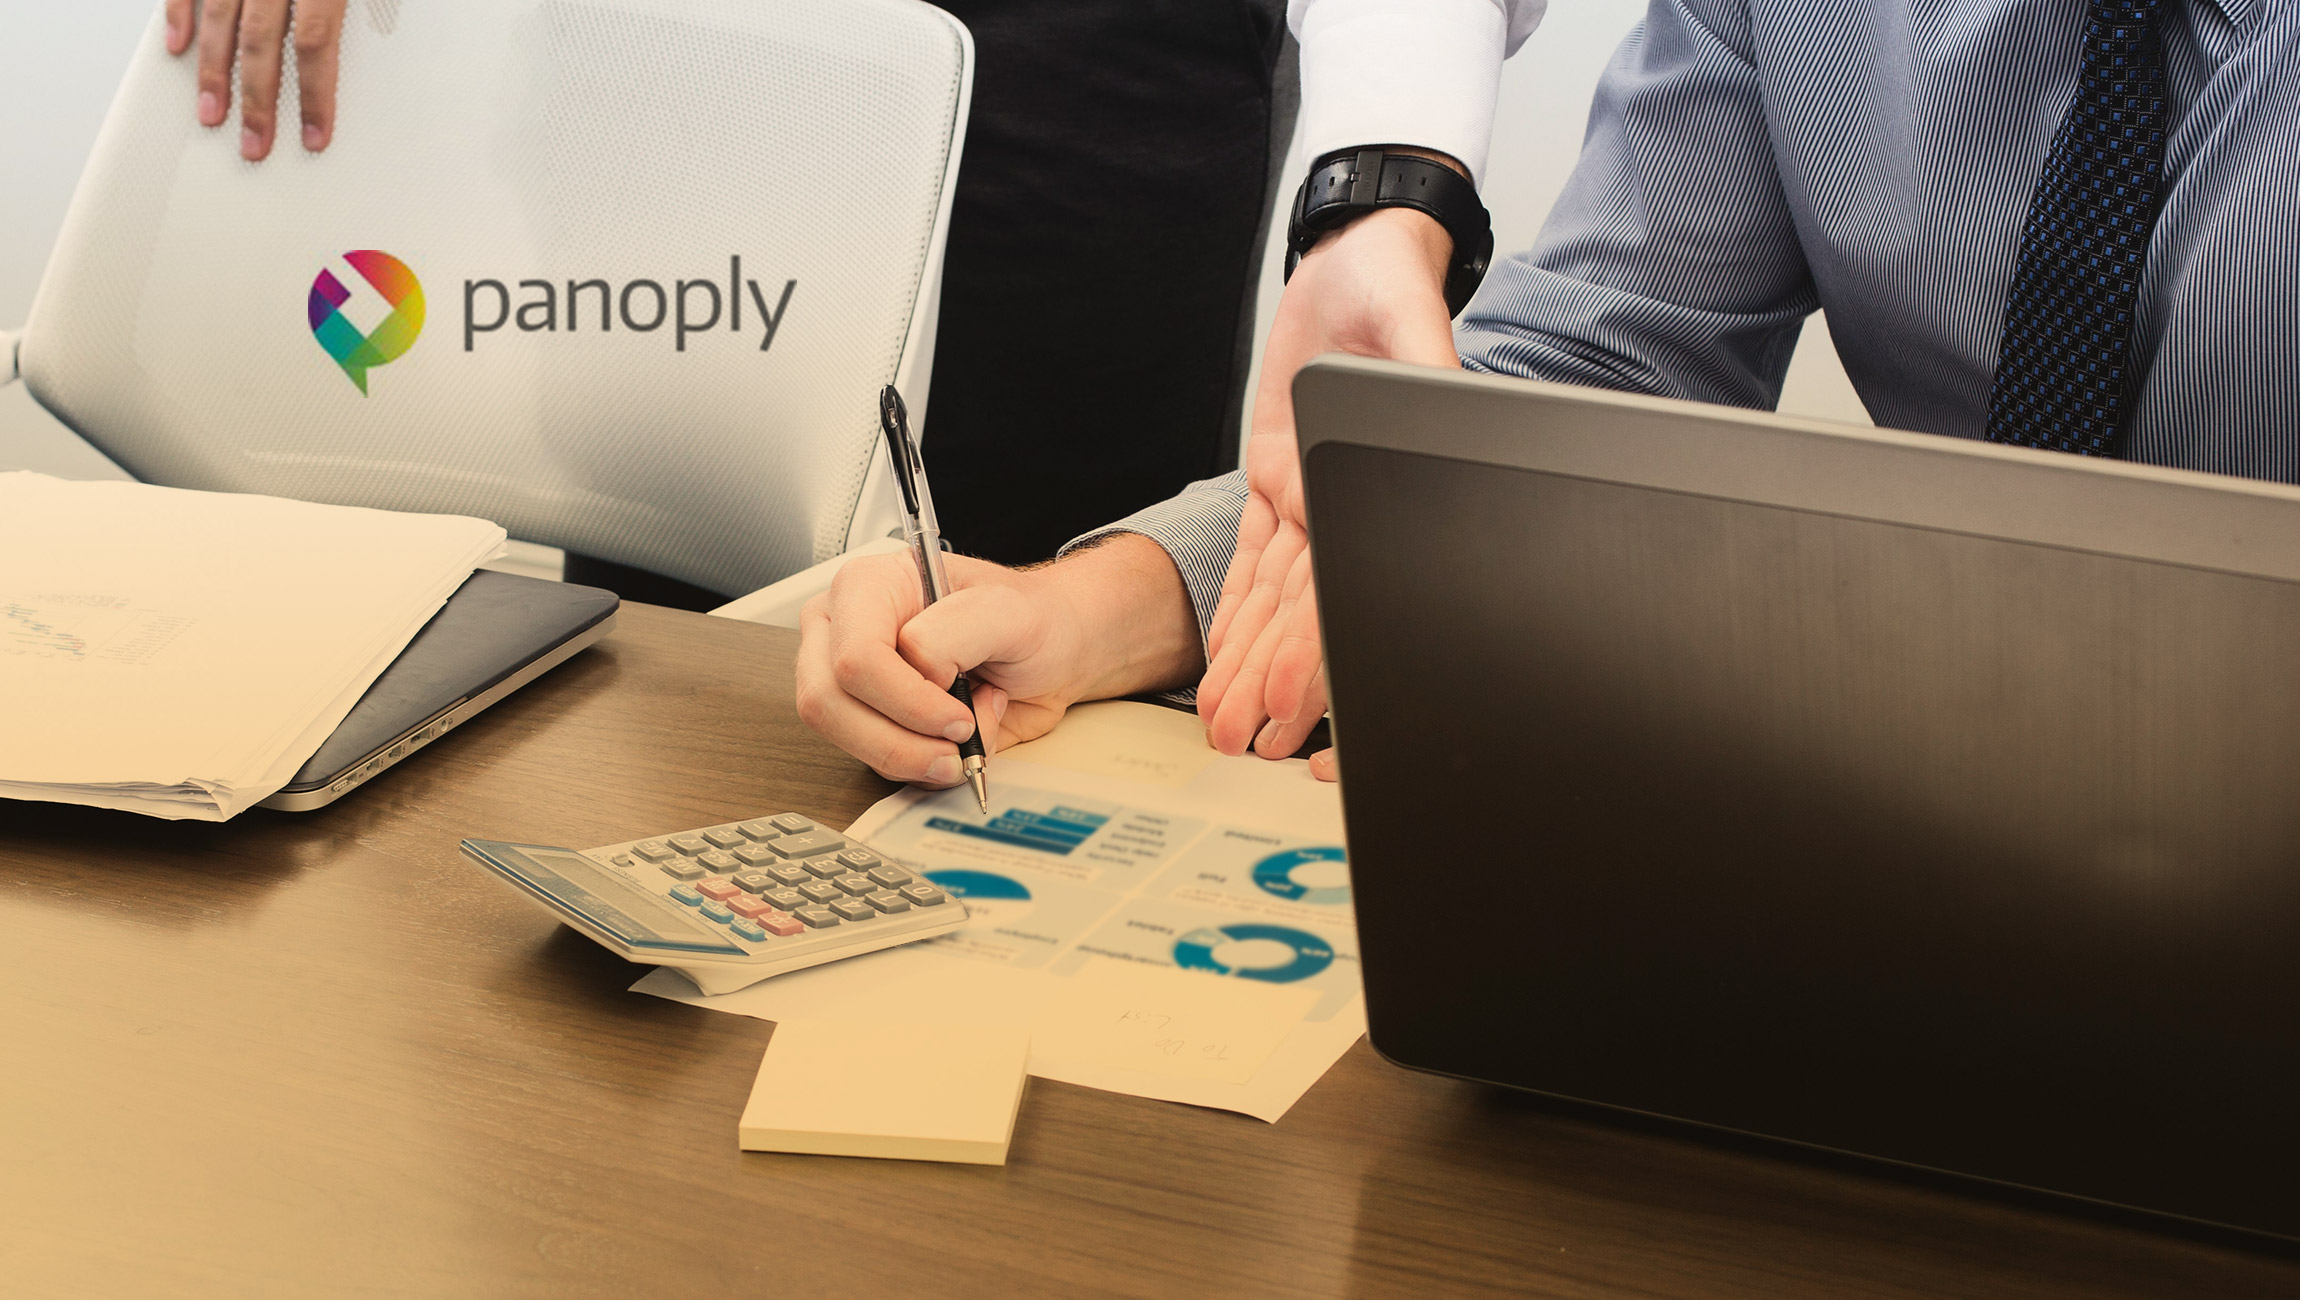 Panoply raises $10 million in funding to revolutionize the data analytics stack